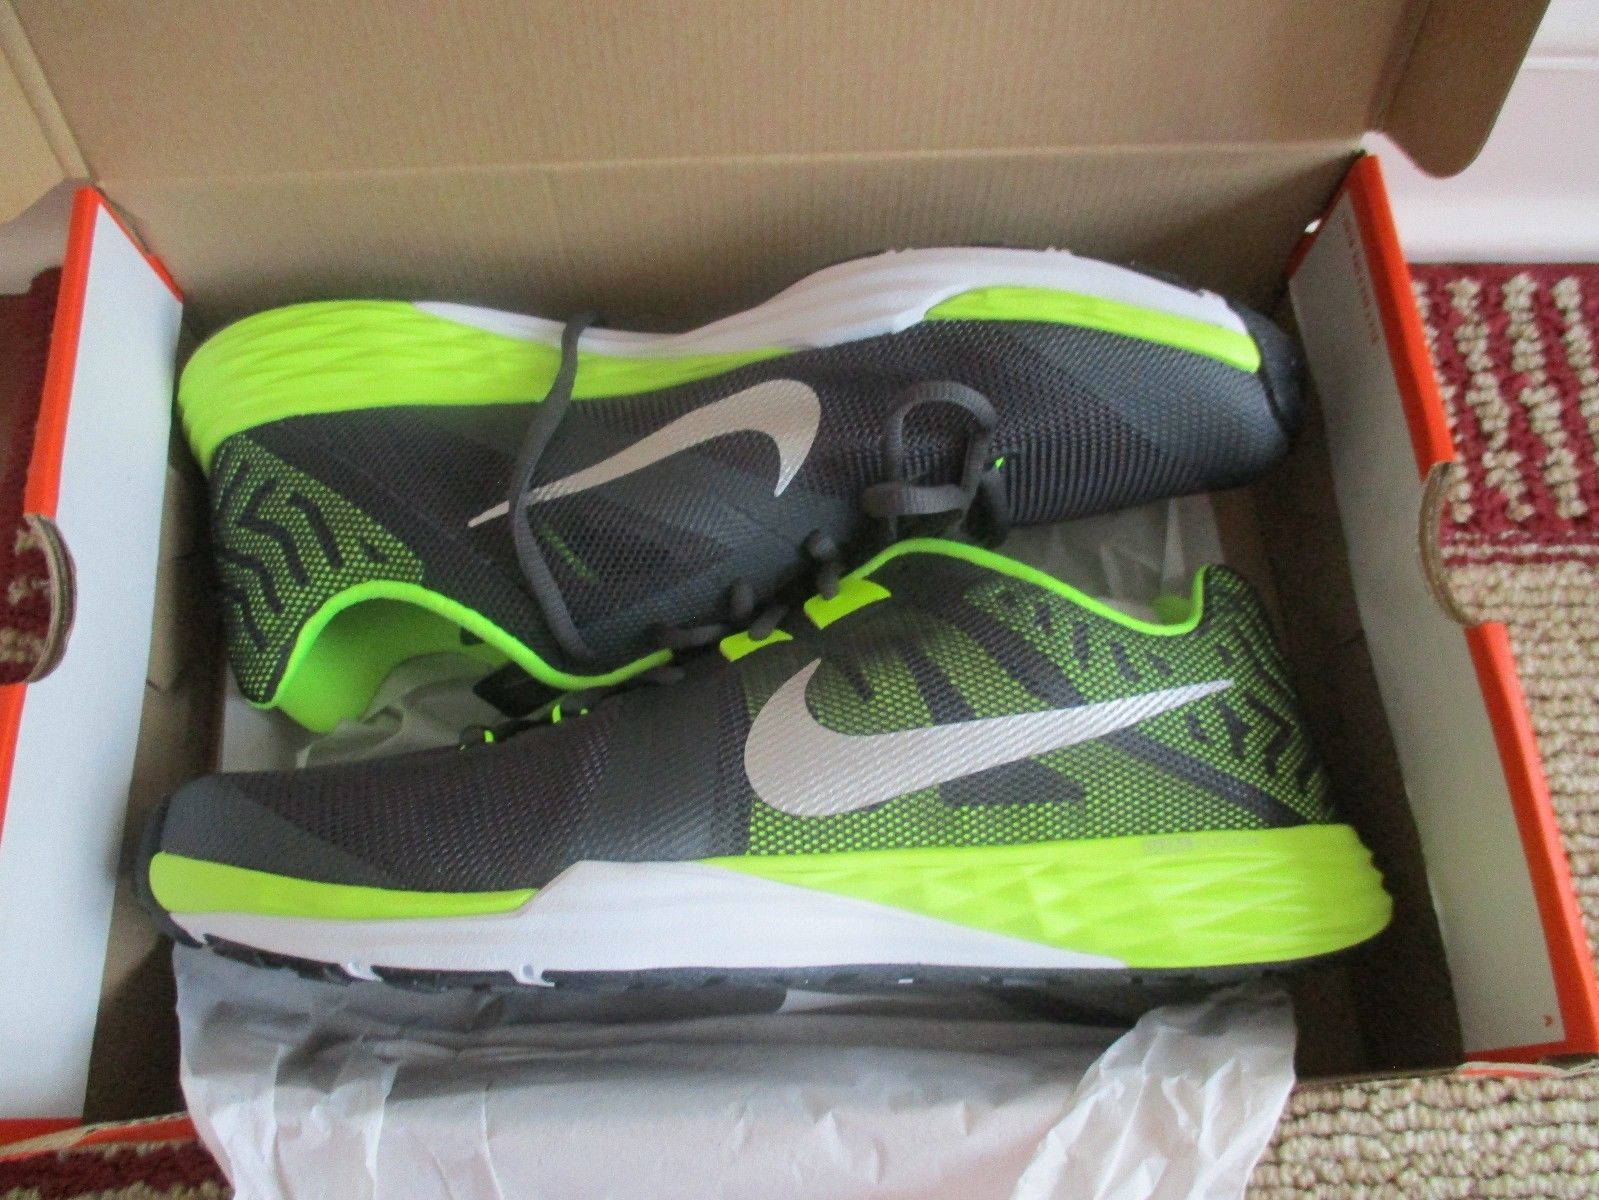 Primary image for BNIB Nike Train Prime Iron DF Training Shoes, Men, Size 11, Style 832219